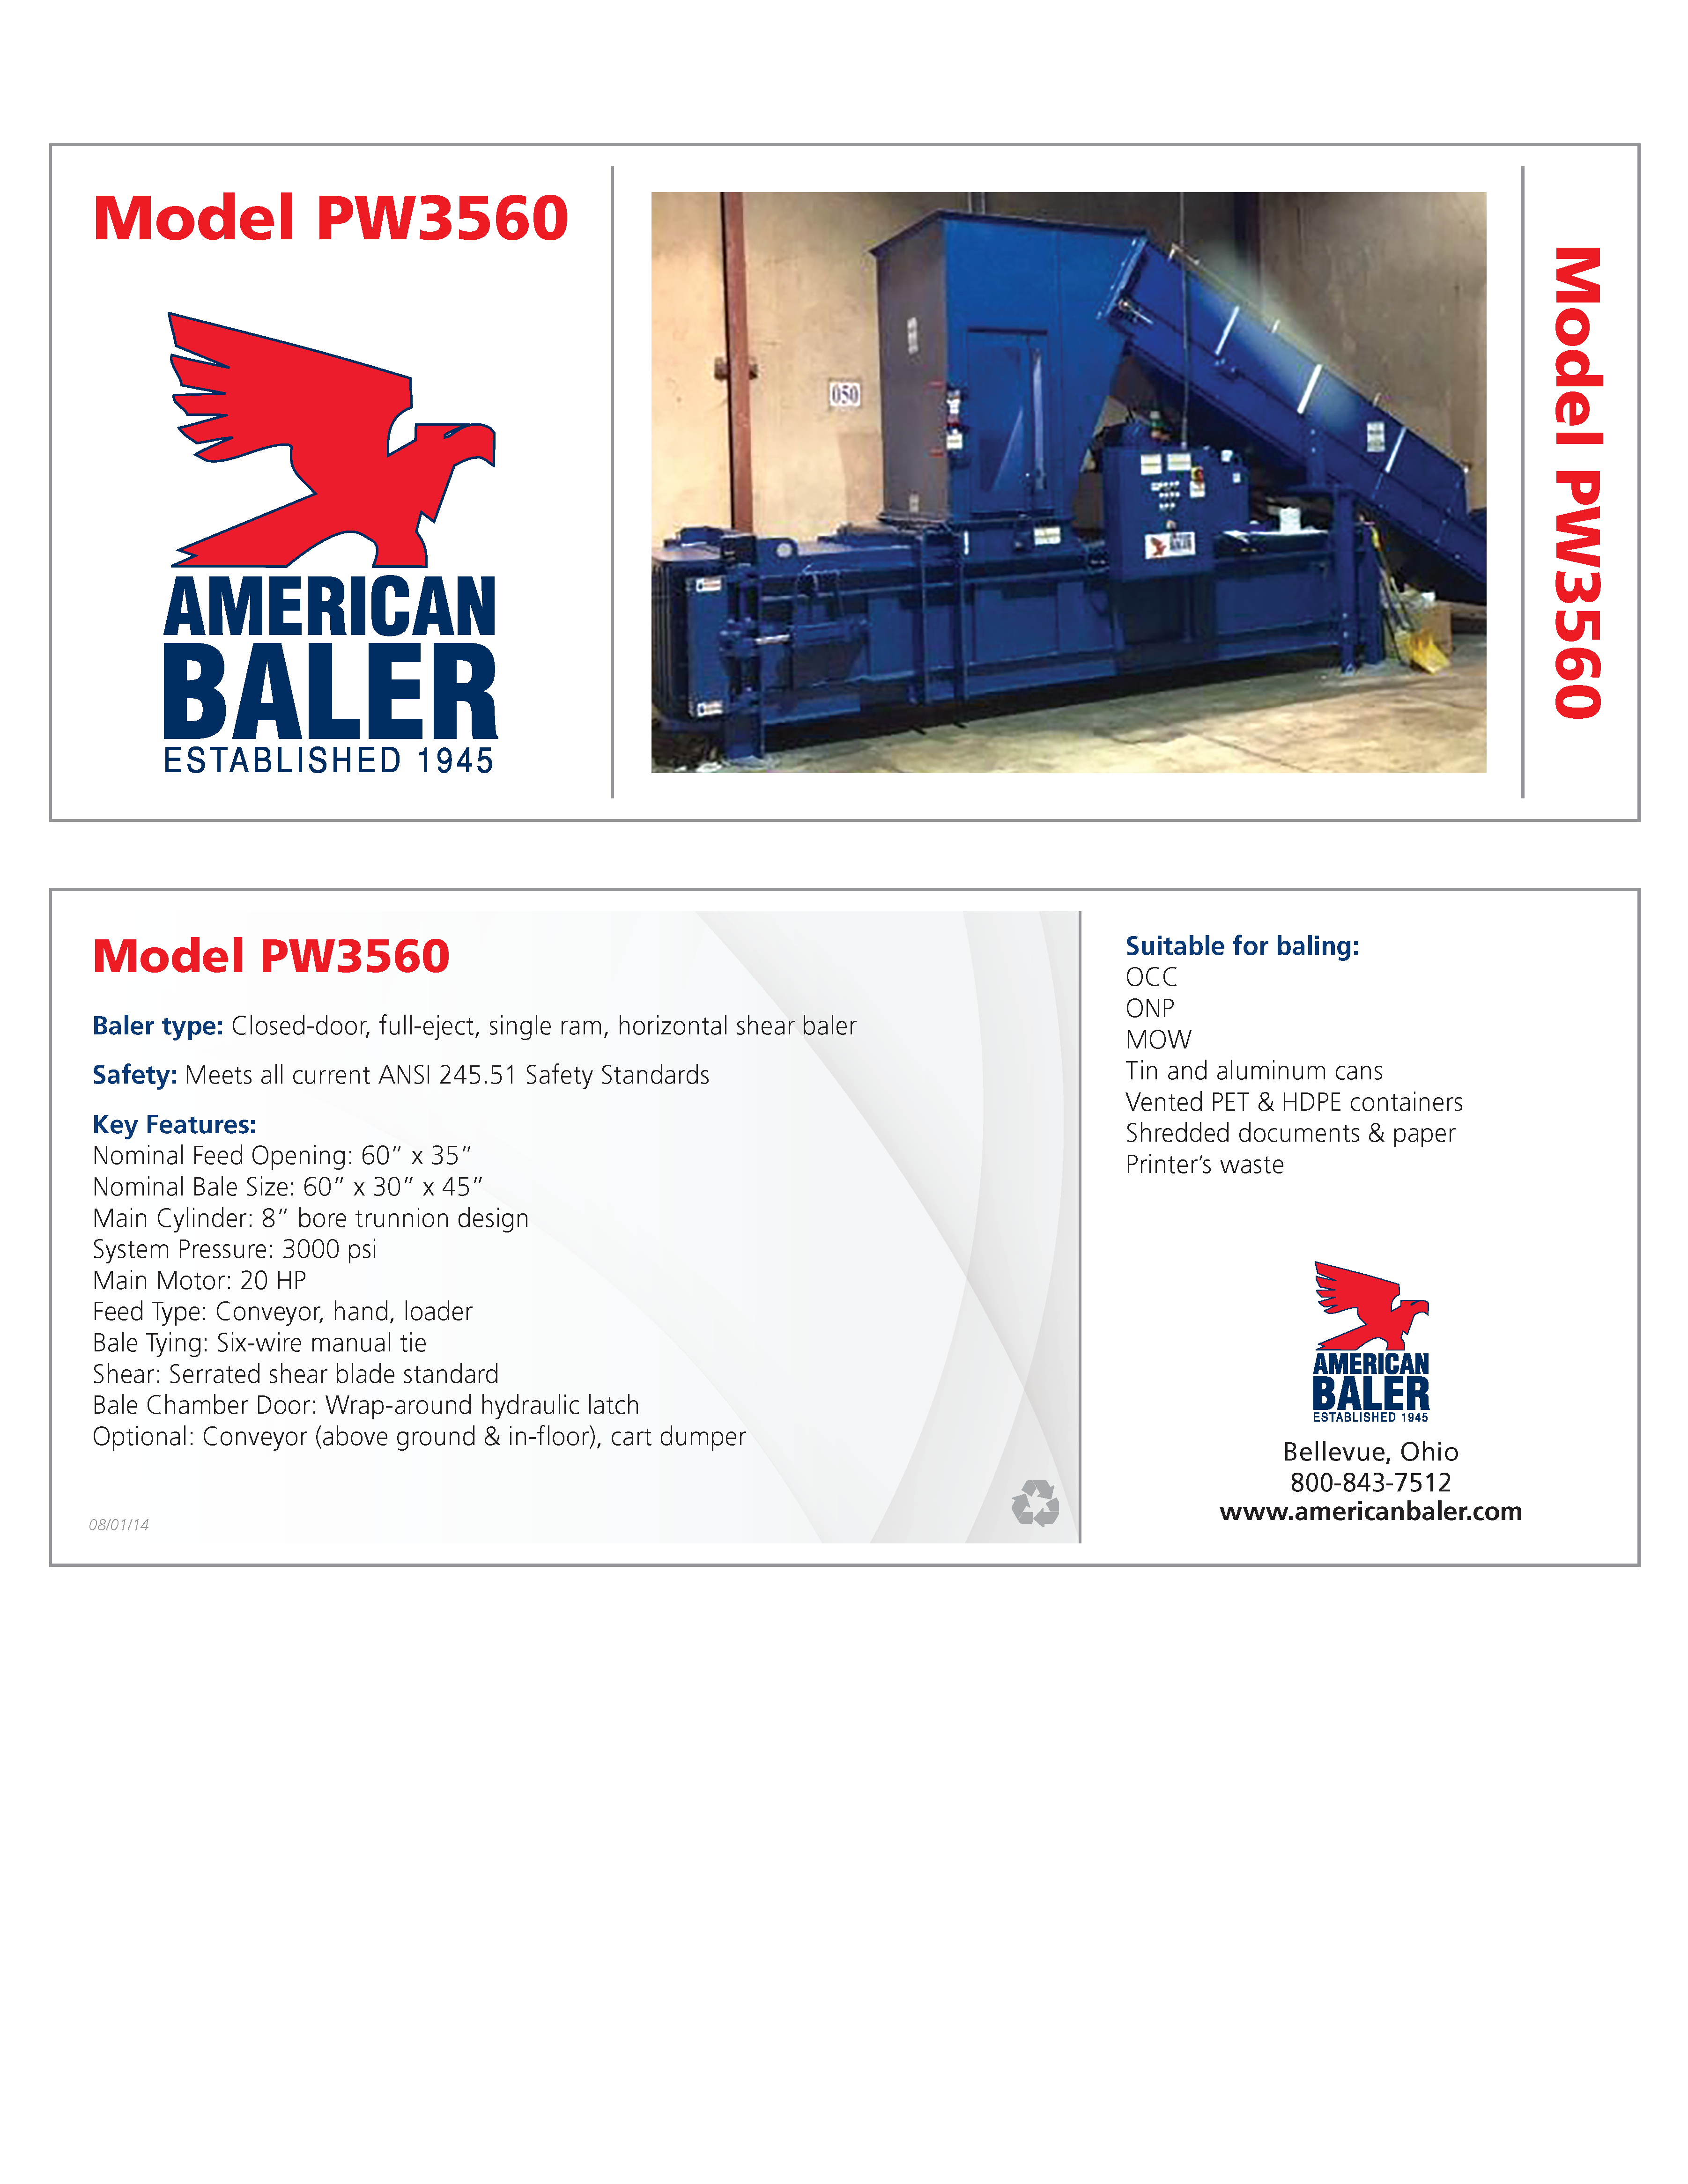 Learn more about the PW3560 Full Eject Manual-Tie Predator Baler in the American Baler Brochure.